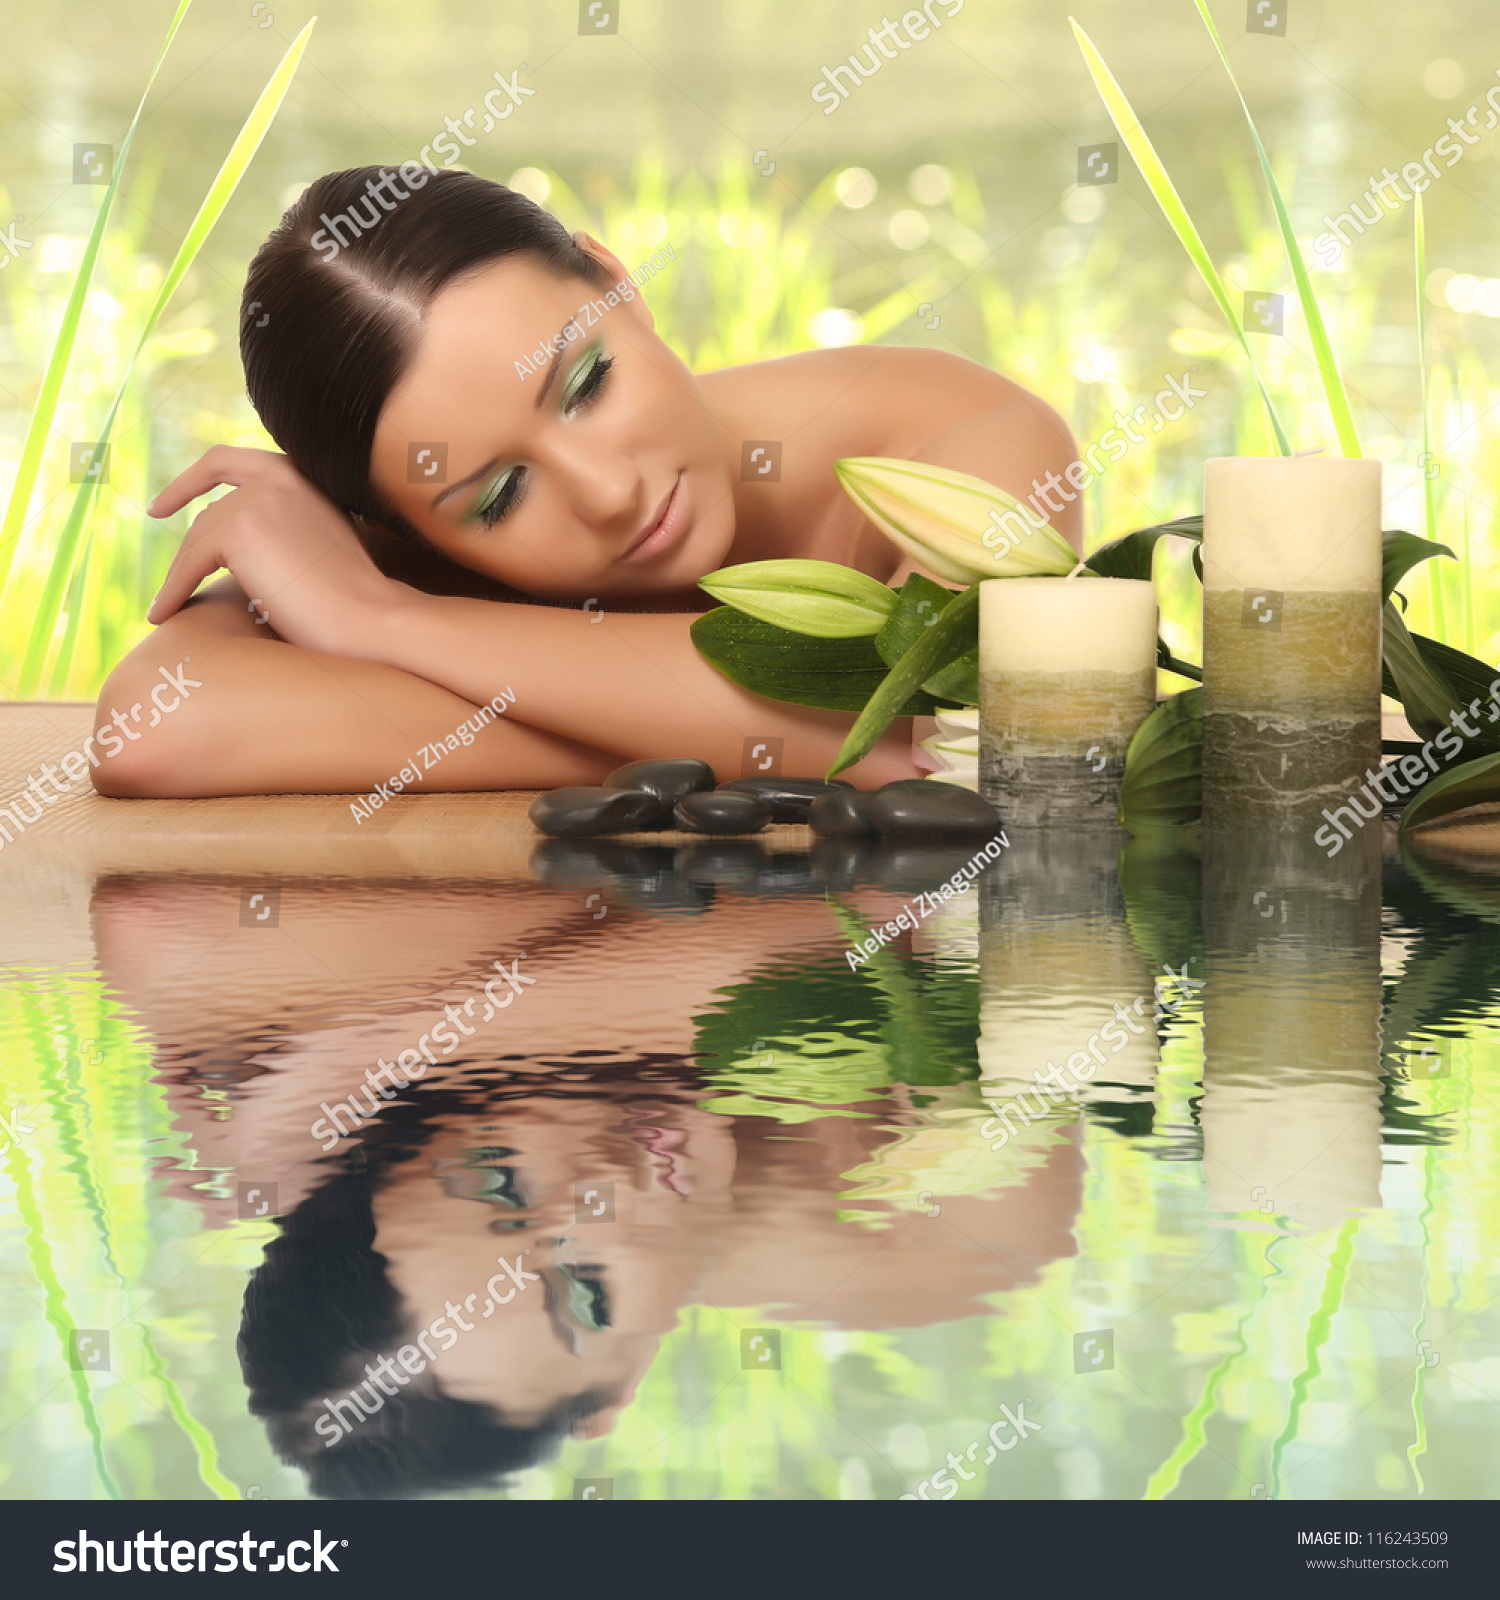 Woman Relaxing In Spa, With Reflection On The Water Stock